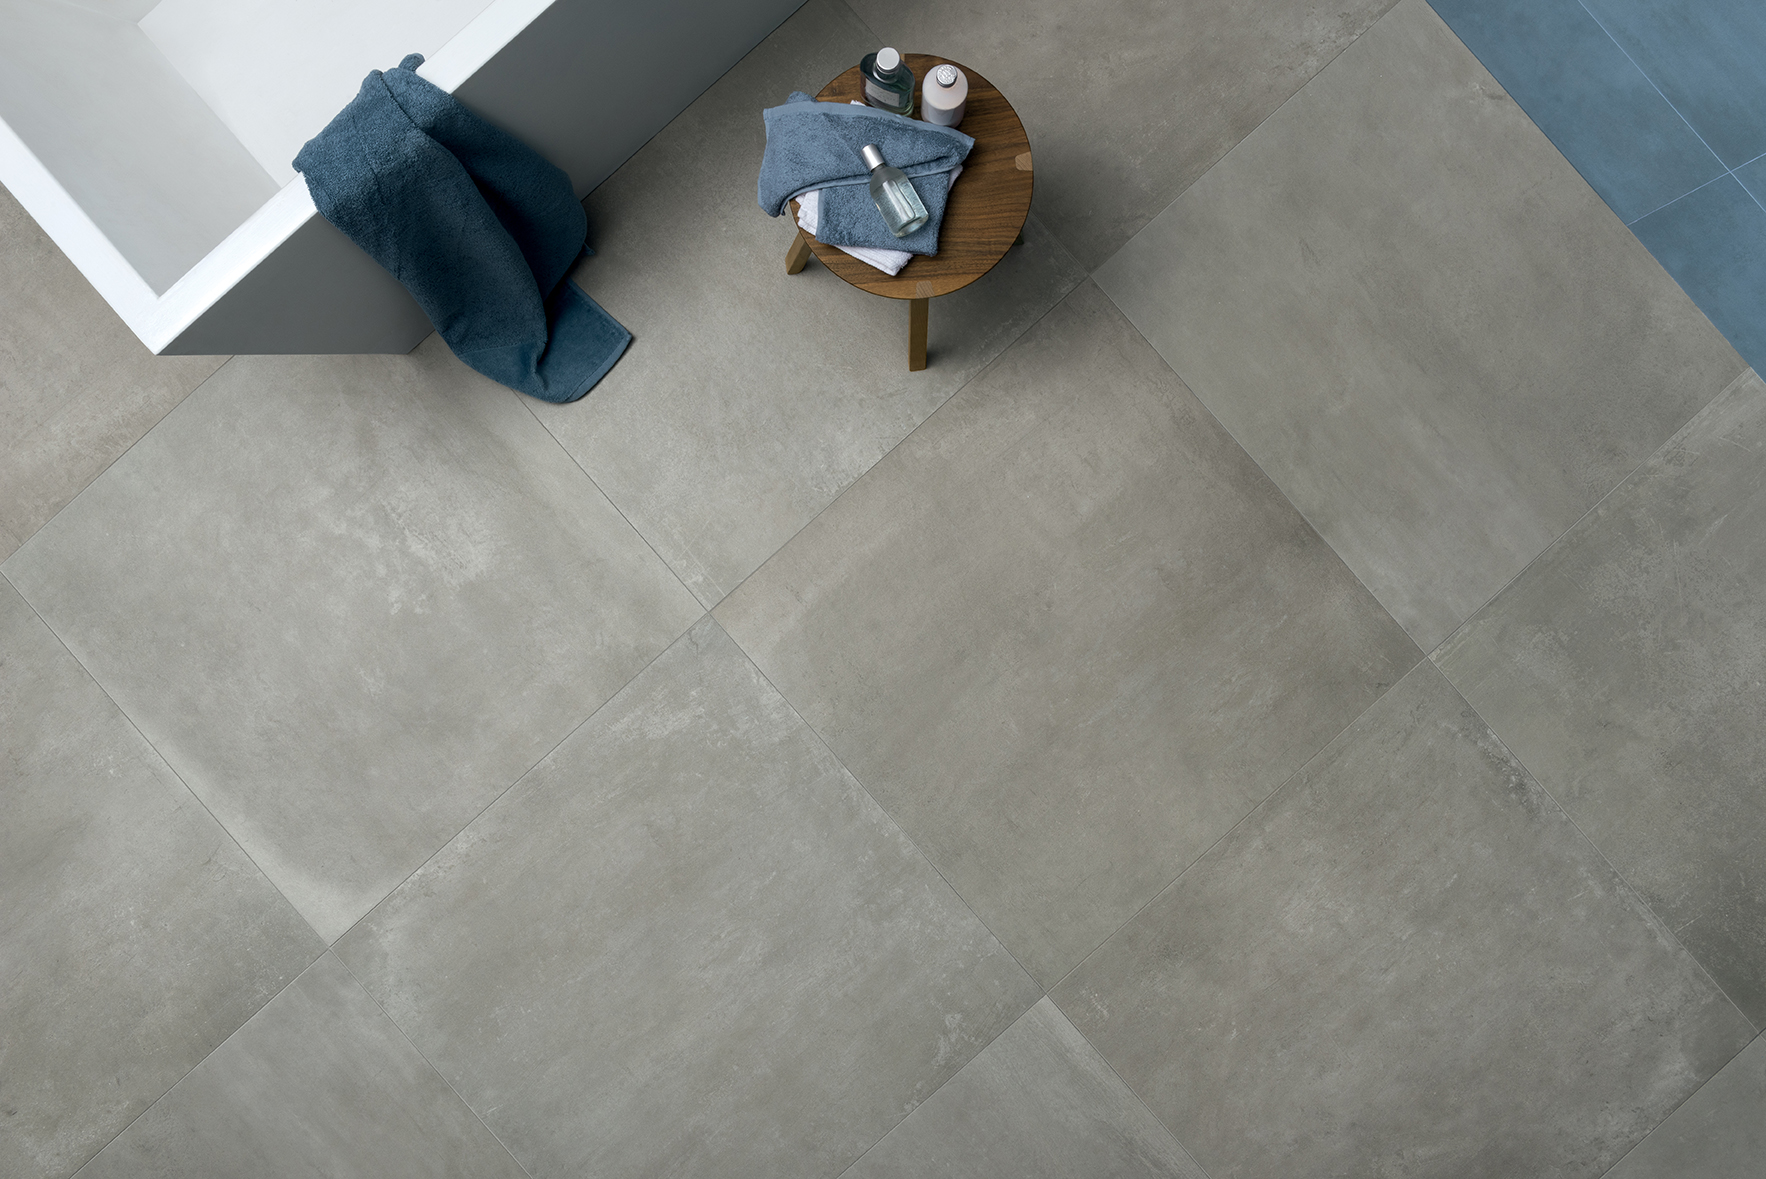 Carrelage CISA CERAMICHE - série restyle 80x80 rett. 1° choix - Photo secondaire n°1